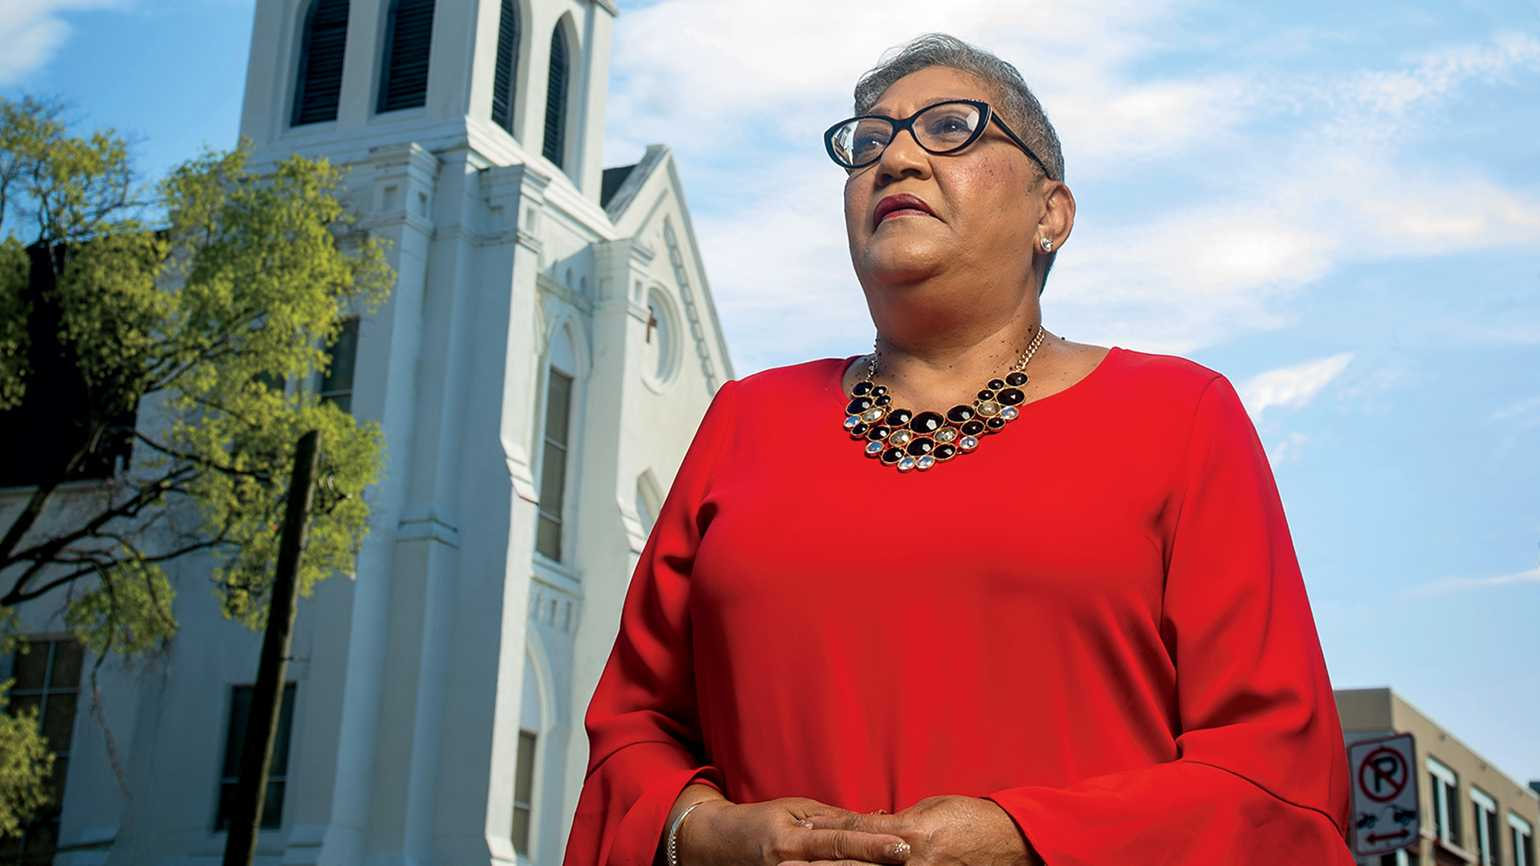 Sharon across from Emanuel AME church, where the shooting occurred